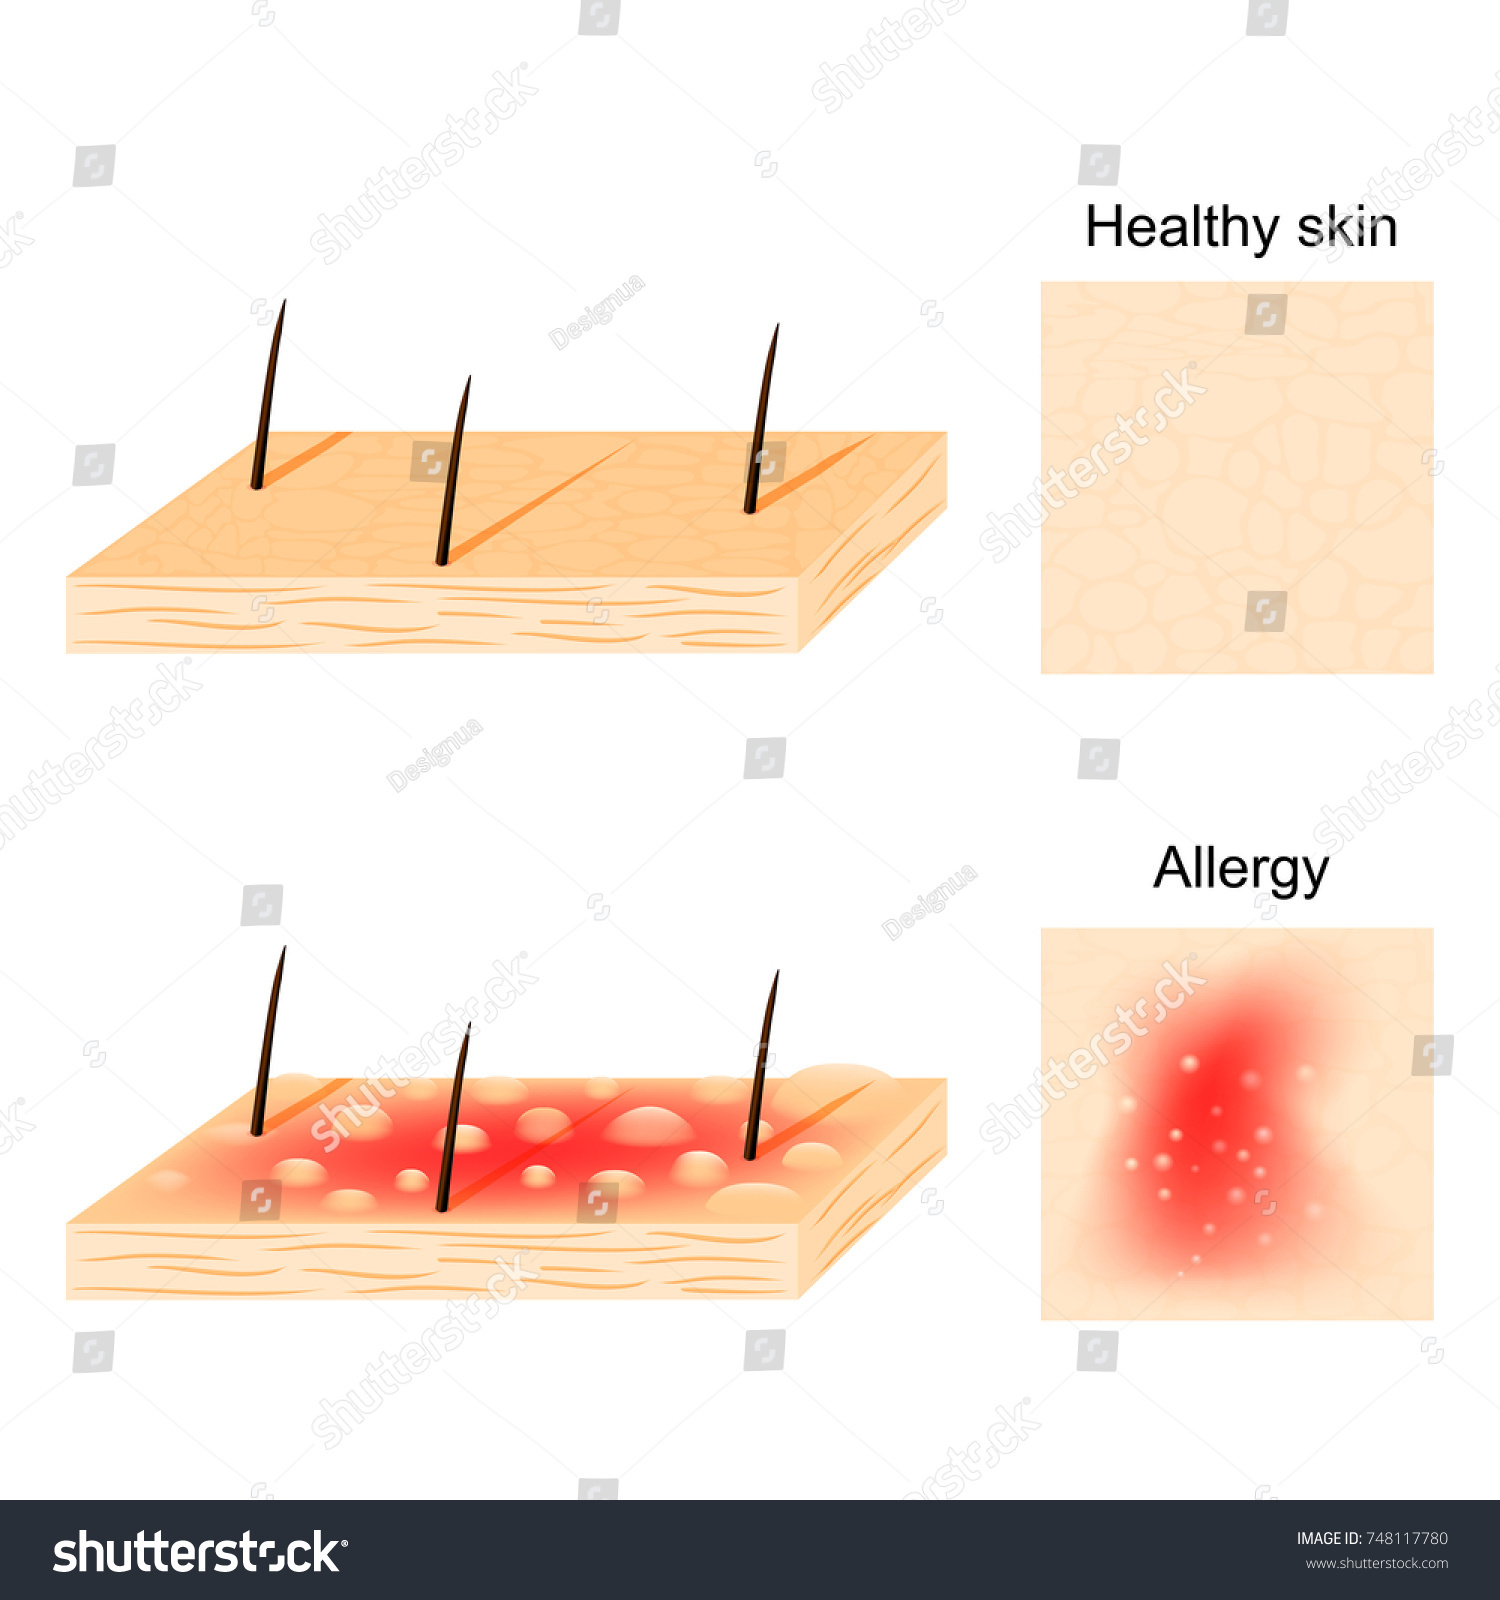 hight resolution of allergy hives urticaria common allergic symptom stock vectorhives urticaria are a common allergic symptom